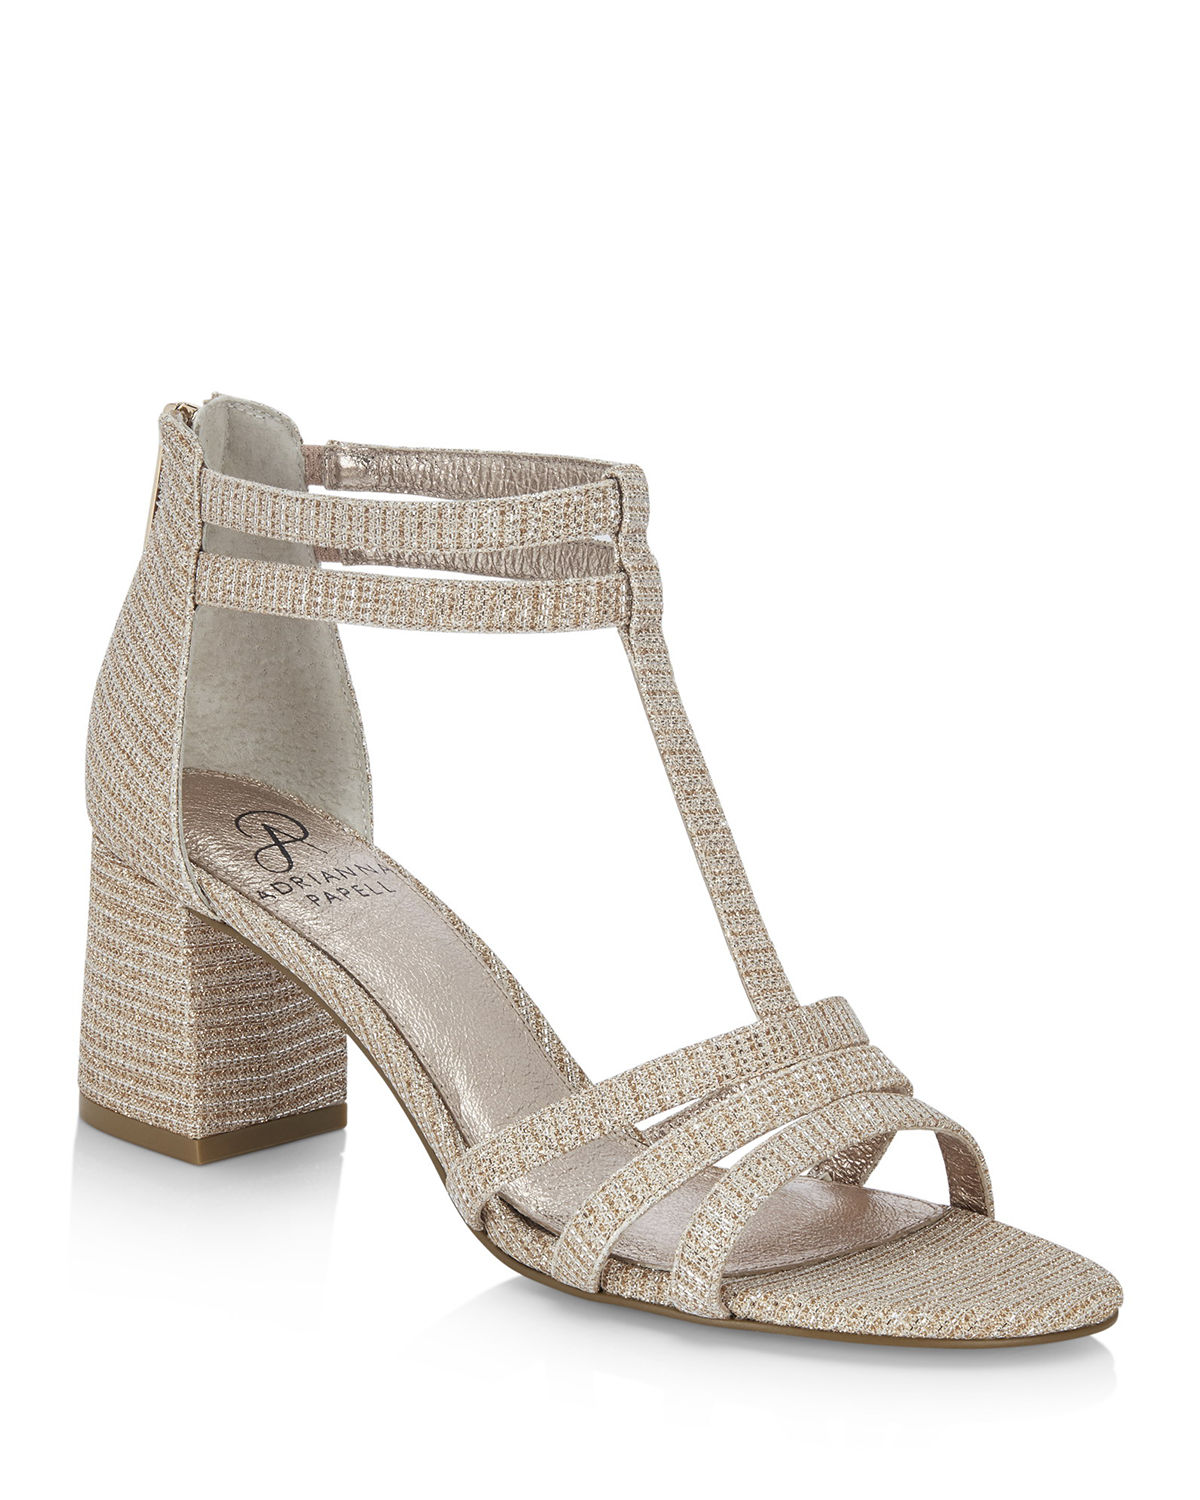 Adrianna Papell Sandals ANELLA SHIMMERY T-STRAP EVENING SANDALS